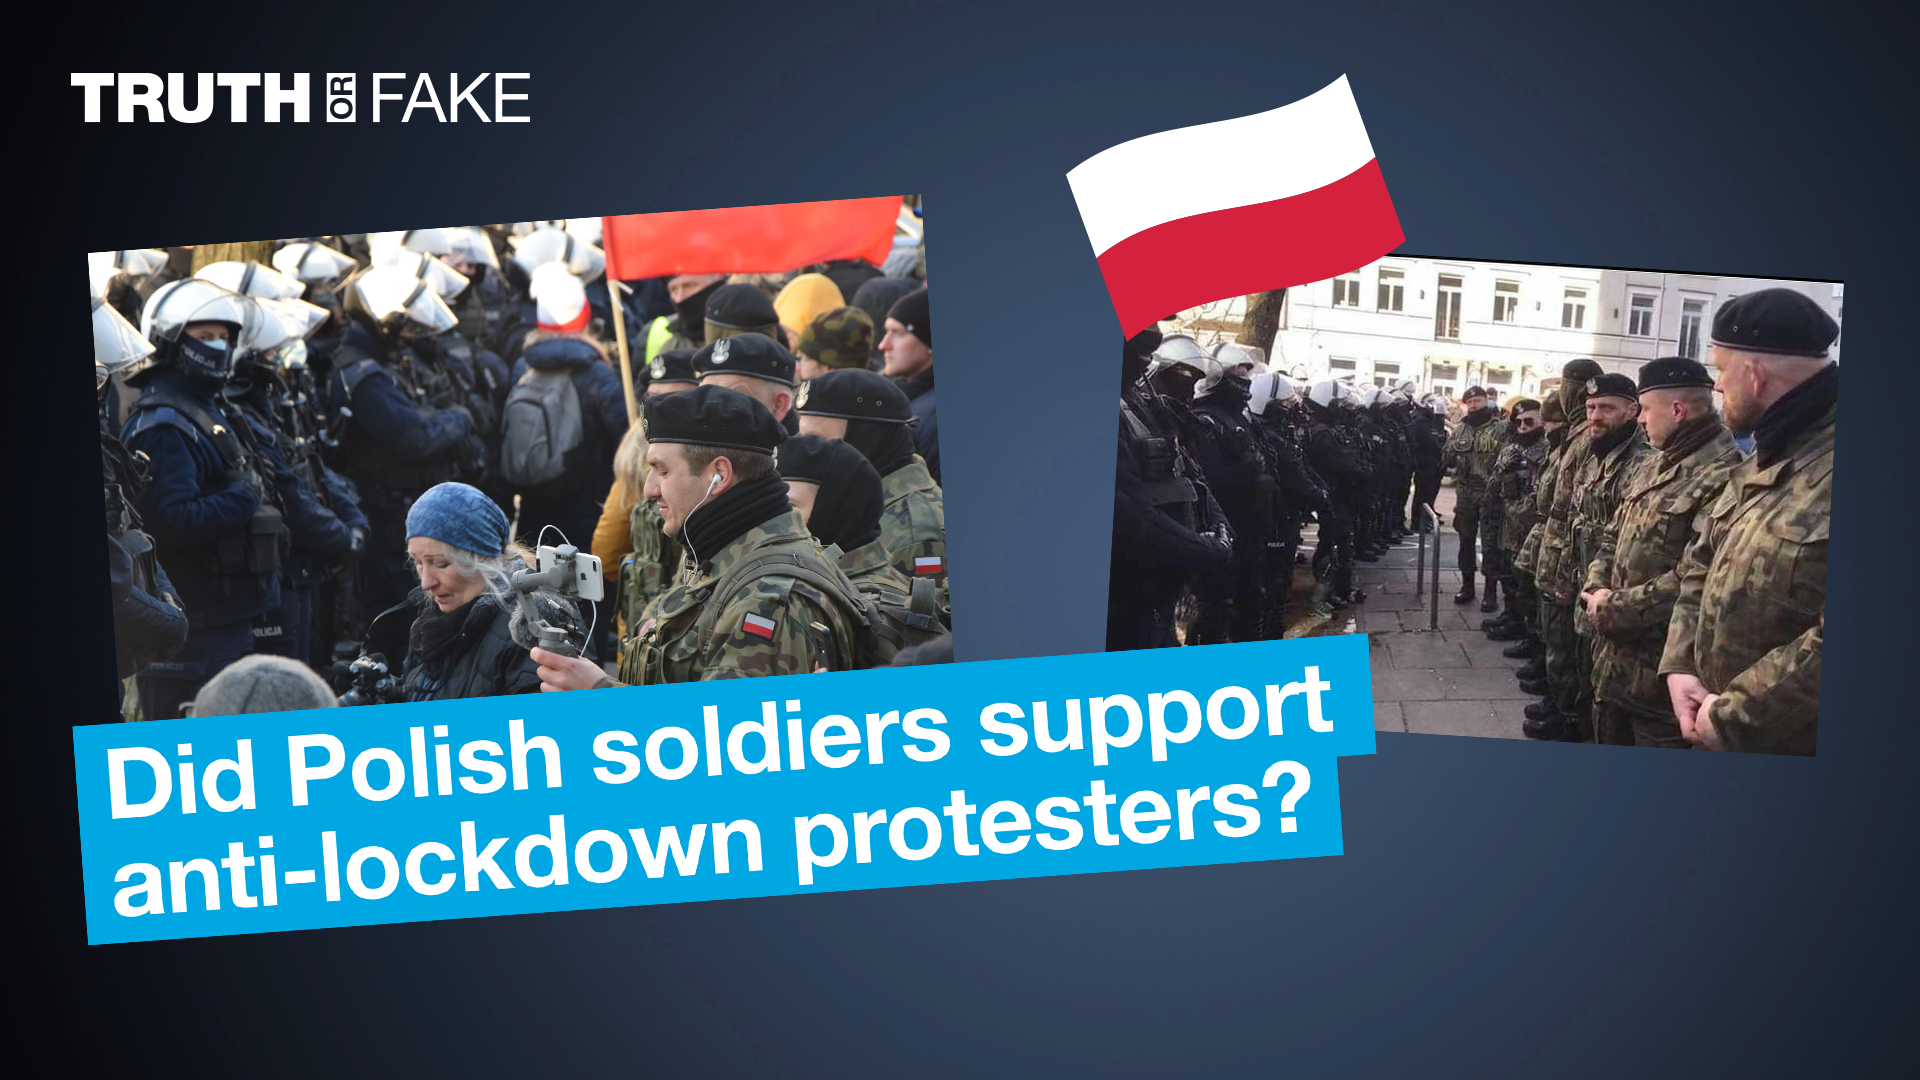 A photo posted on Facebook in early April allegedly shows Polish soldiers standing up to police officers to defend protesters marching against Covid-19 restrictions.